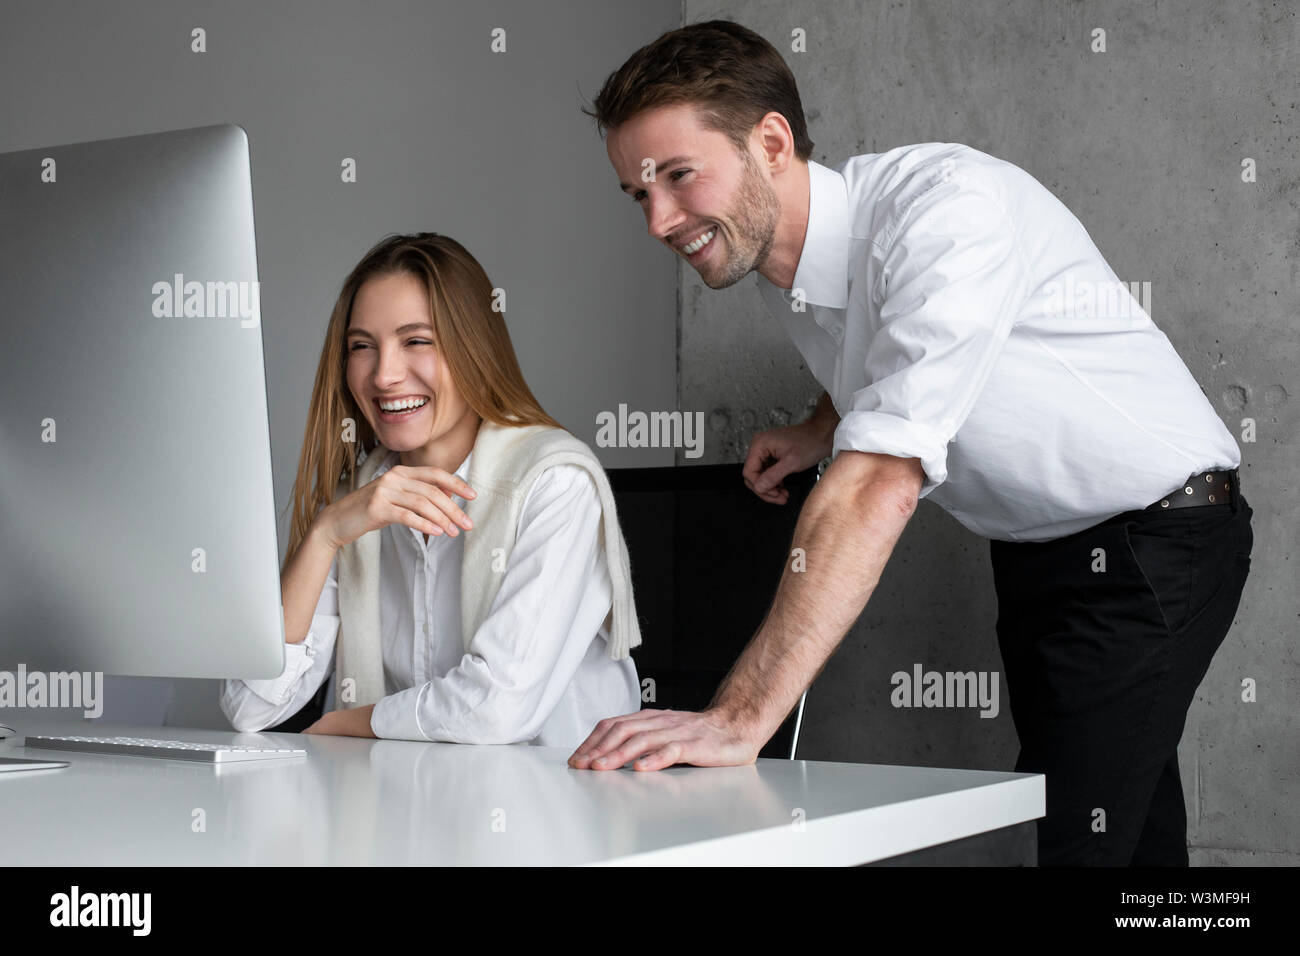 Smiling businesspeople using computer - Stock Image